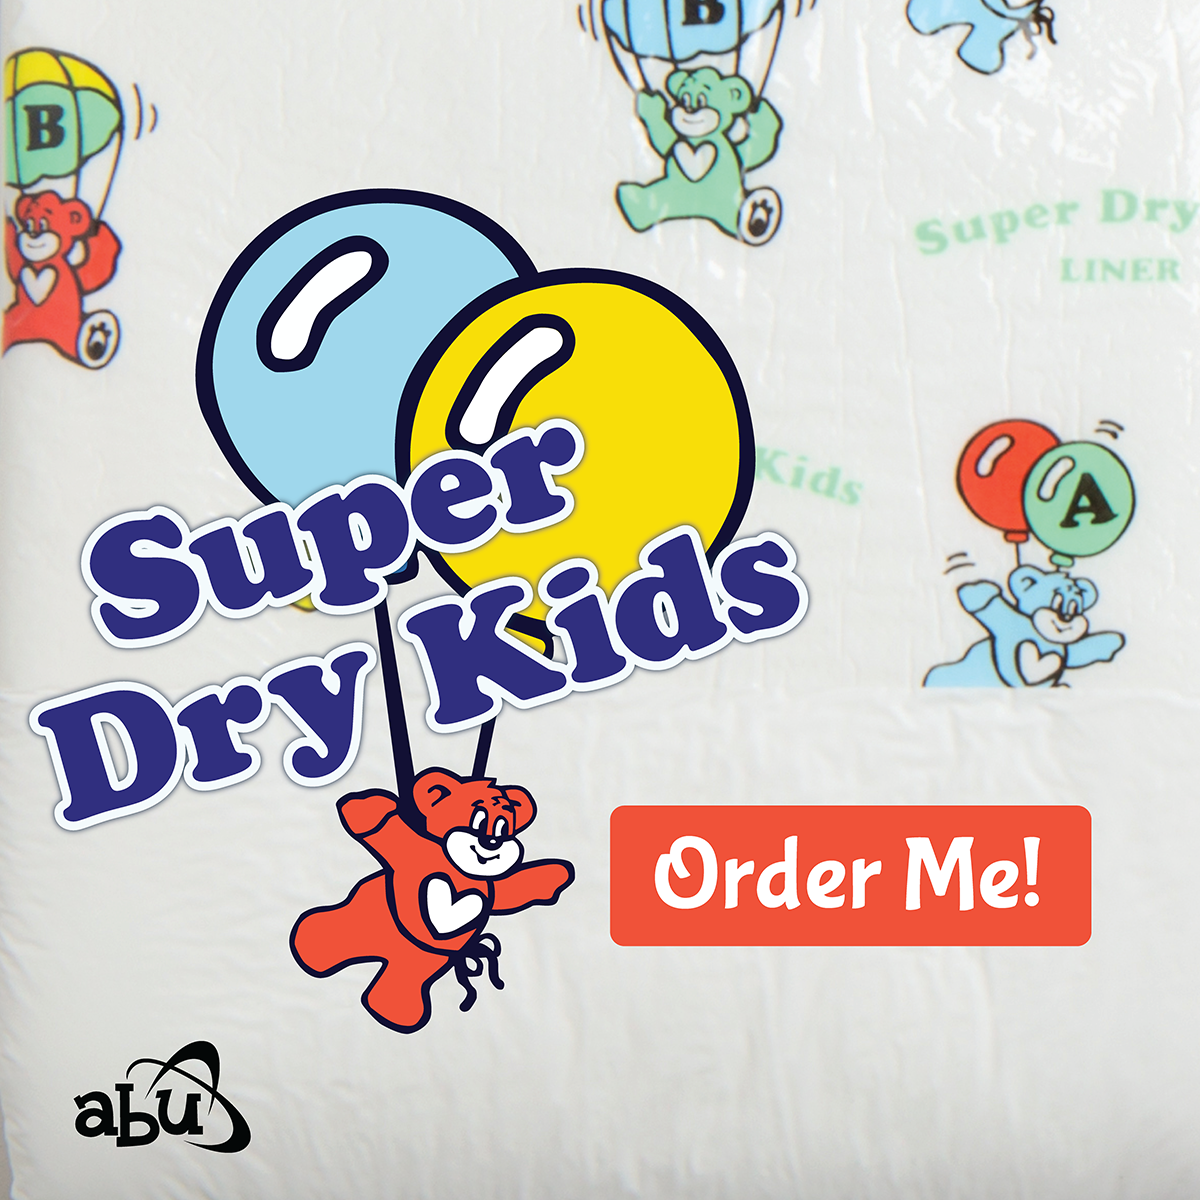 ABU Super Dry Kids Diapers